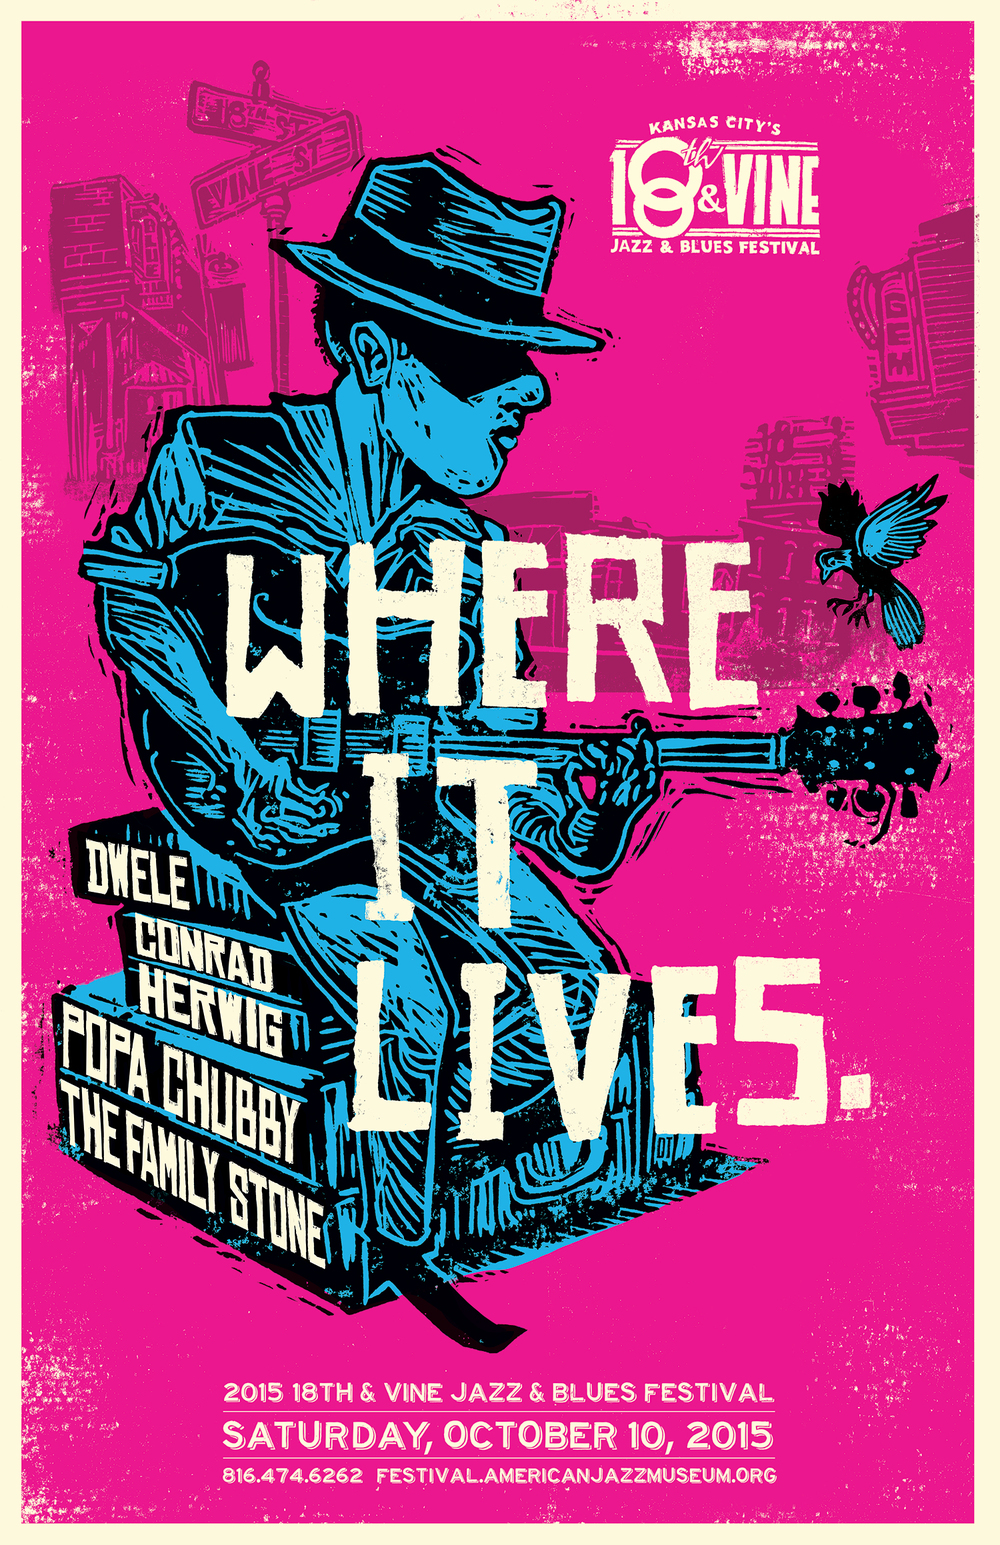 "Mixed Media, Lino block cut with digital finish 22""x 34"" Annual poster advertising the 18th & Vine Jazz Fest benefitting the American Jazz Museum located in the historic 18th & Vine Jazz district in Kansas City Missouri."